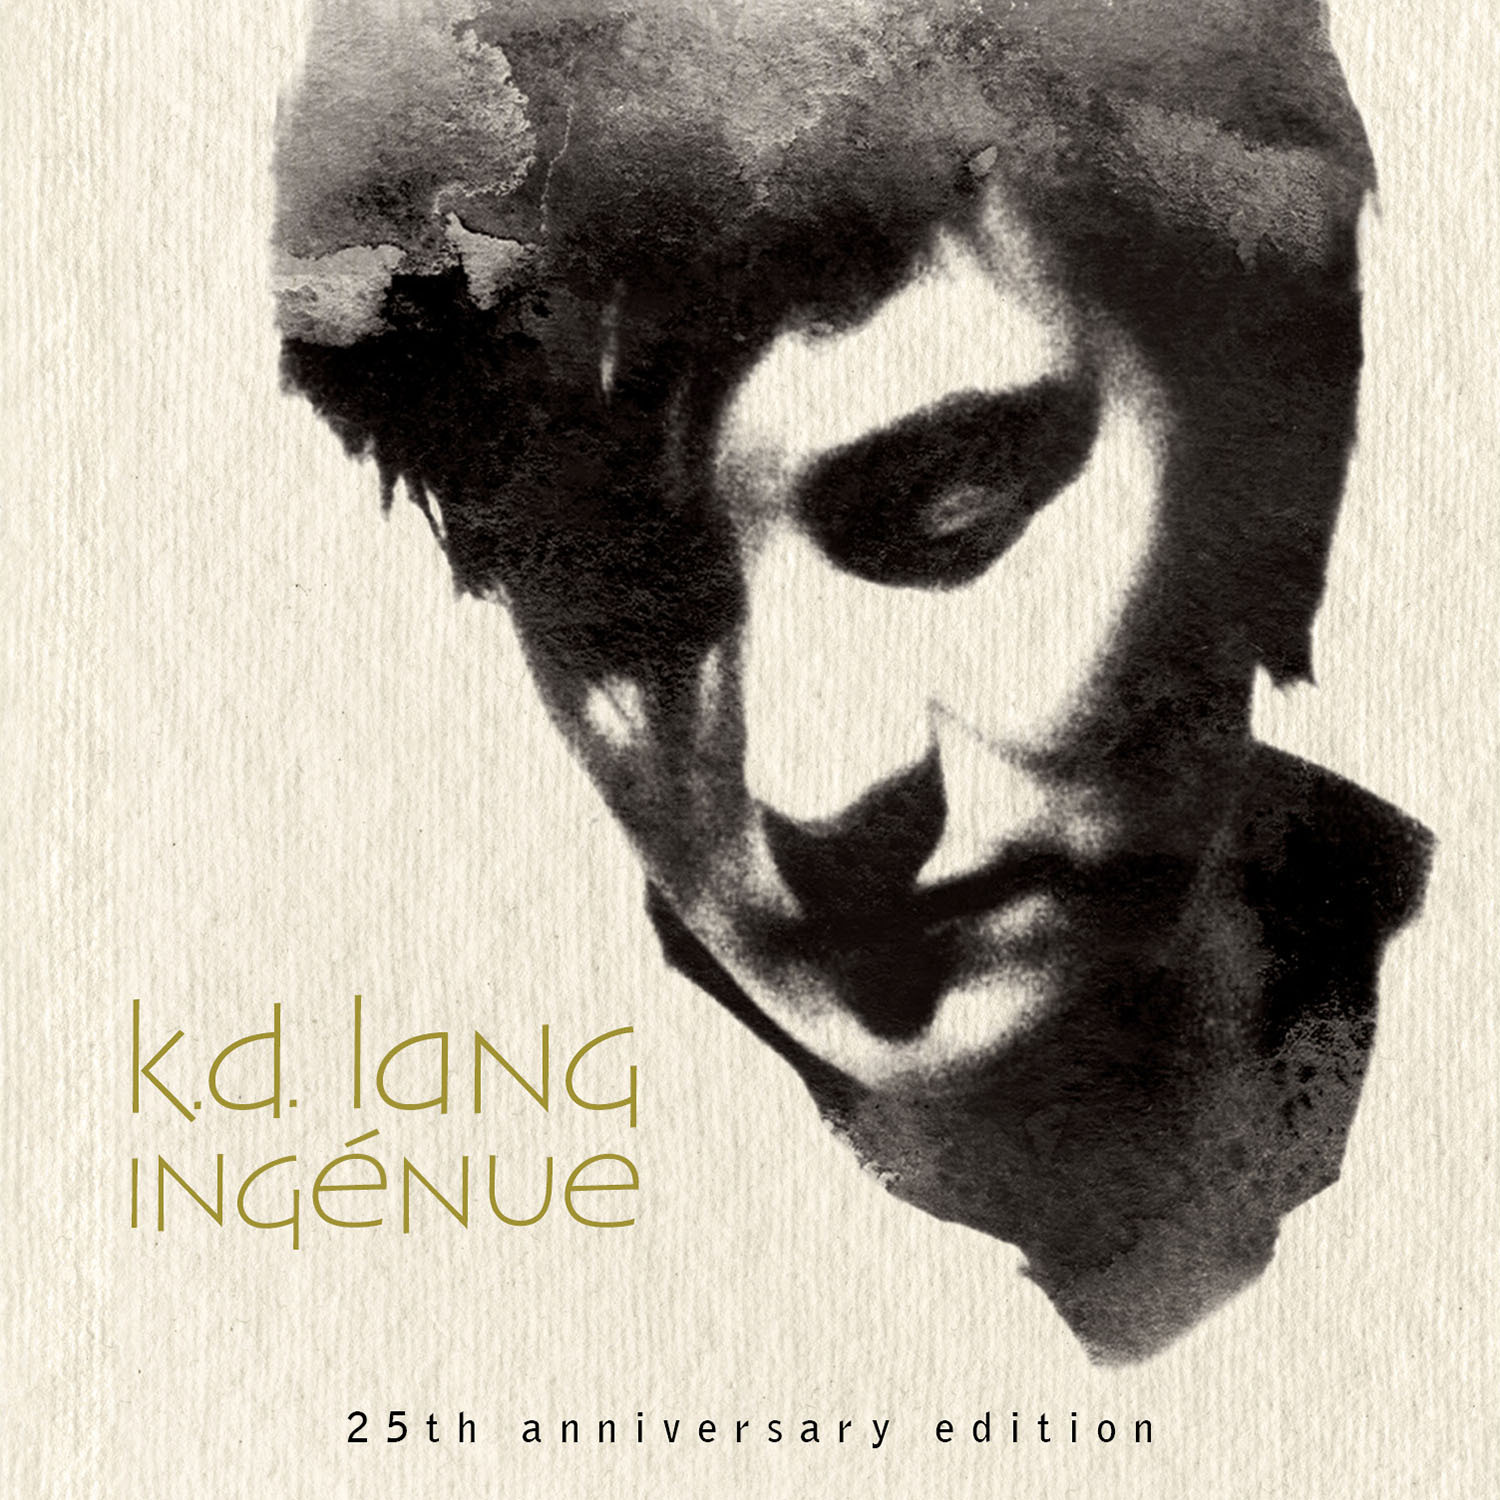 Nonesuch to Reissue k.d. lang's Grammy-winning Breakthrough Album Ingénue on July 7